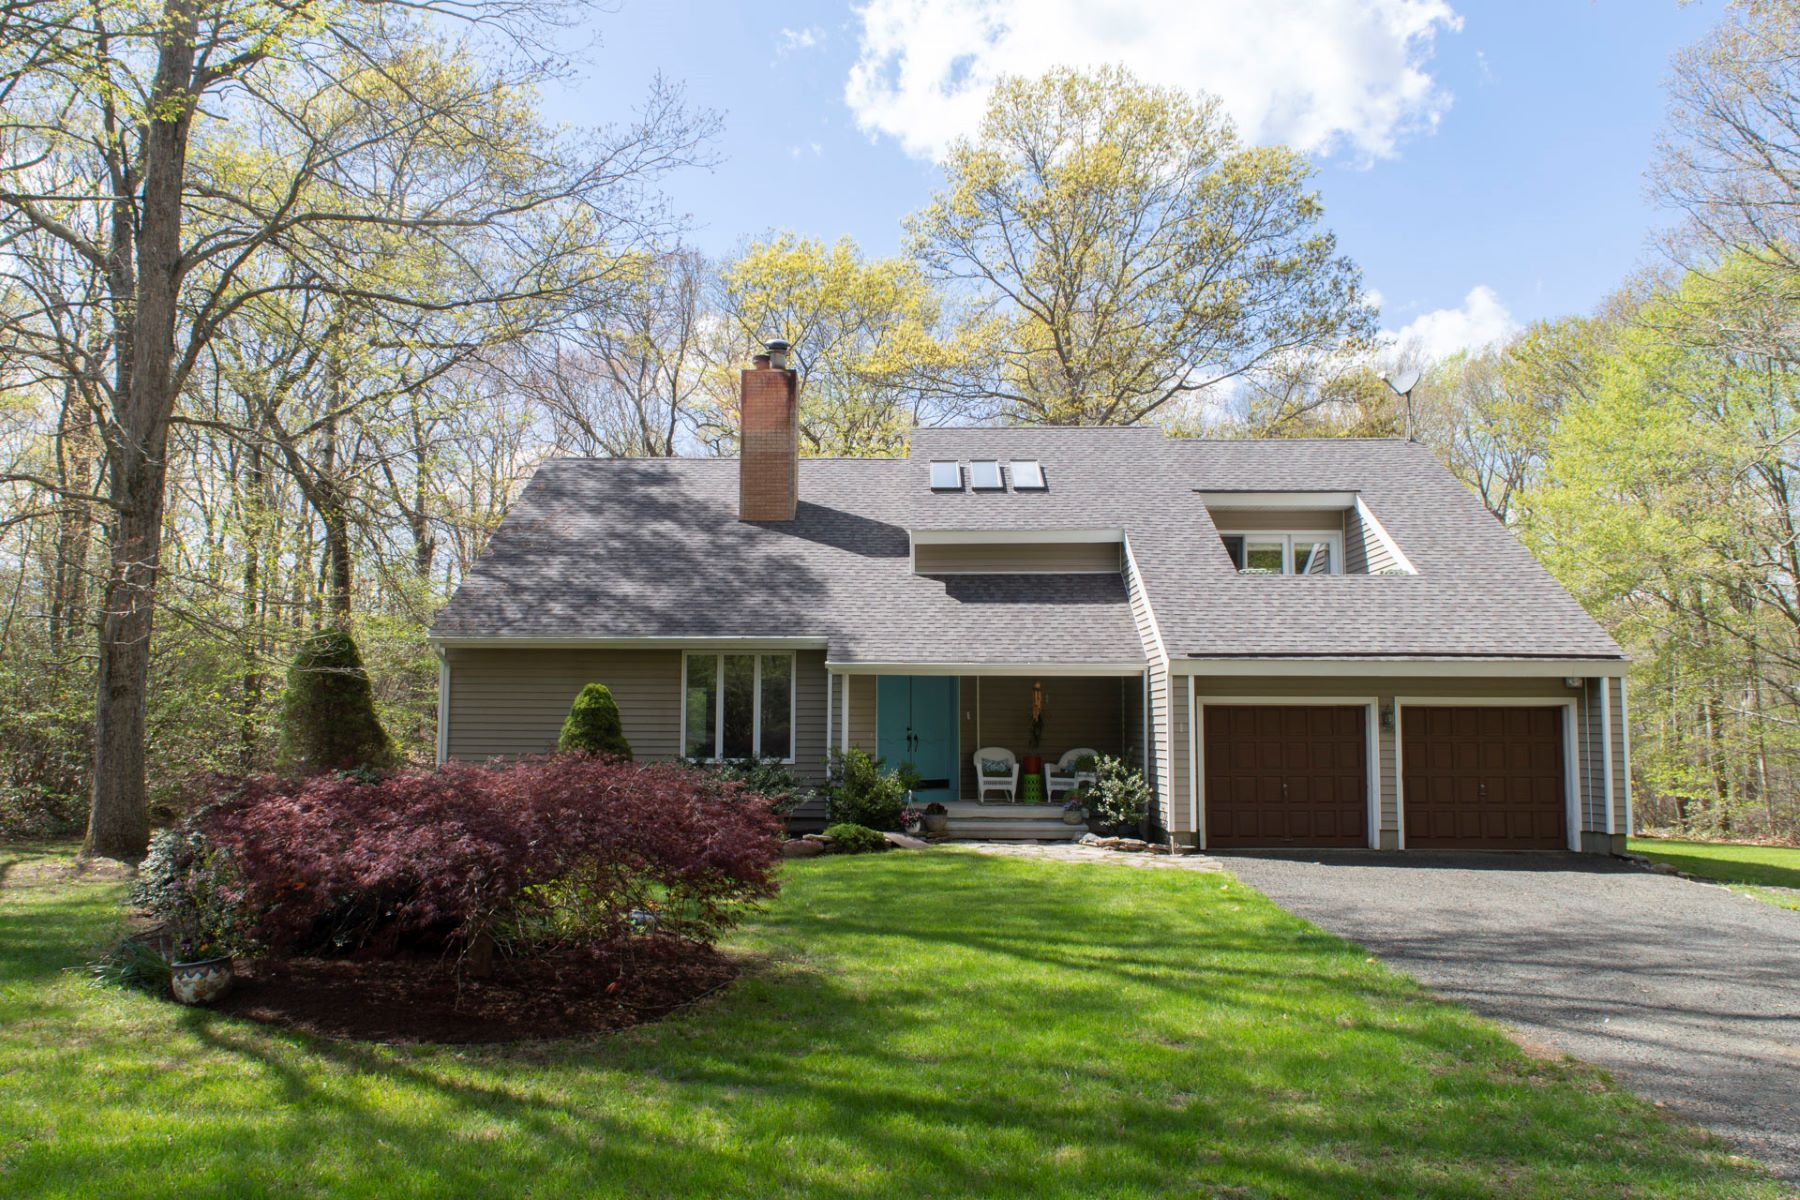 Single Family Homes for Sale at 15 Colonial Drive 15 Colonial Dr Killingworth, Connecticut 06419 United States